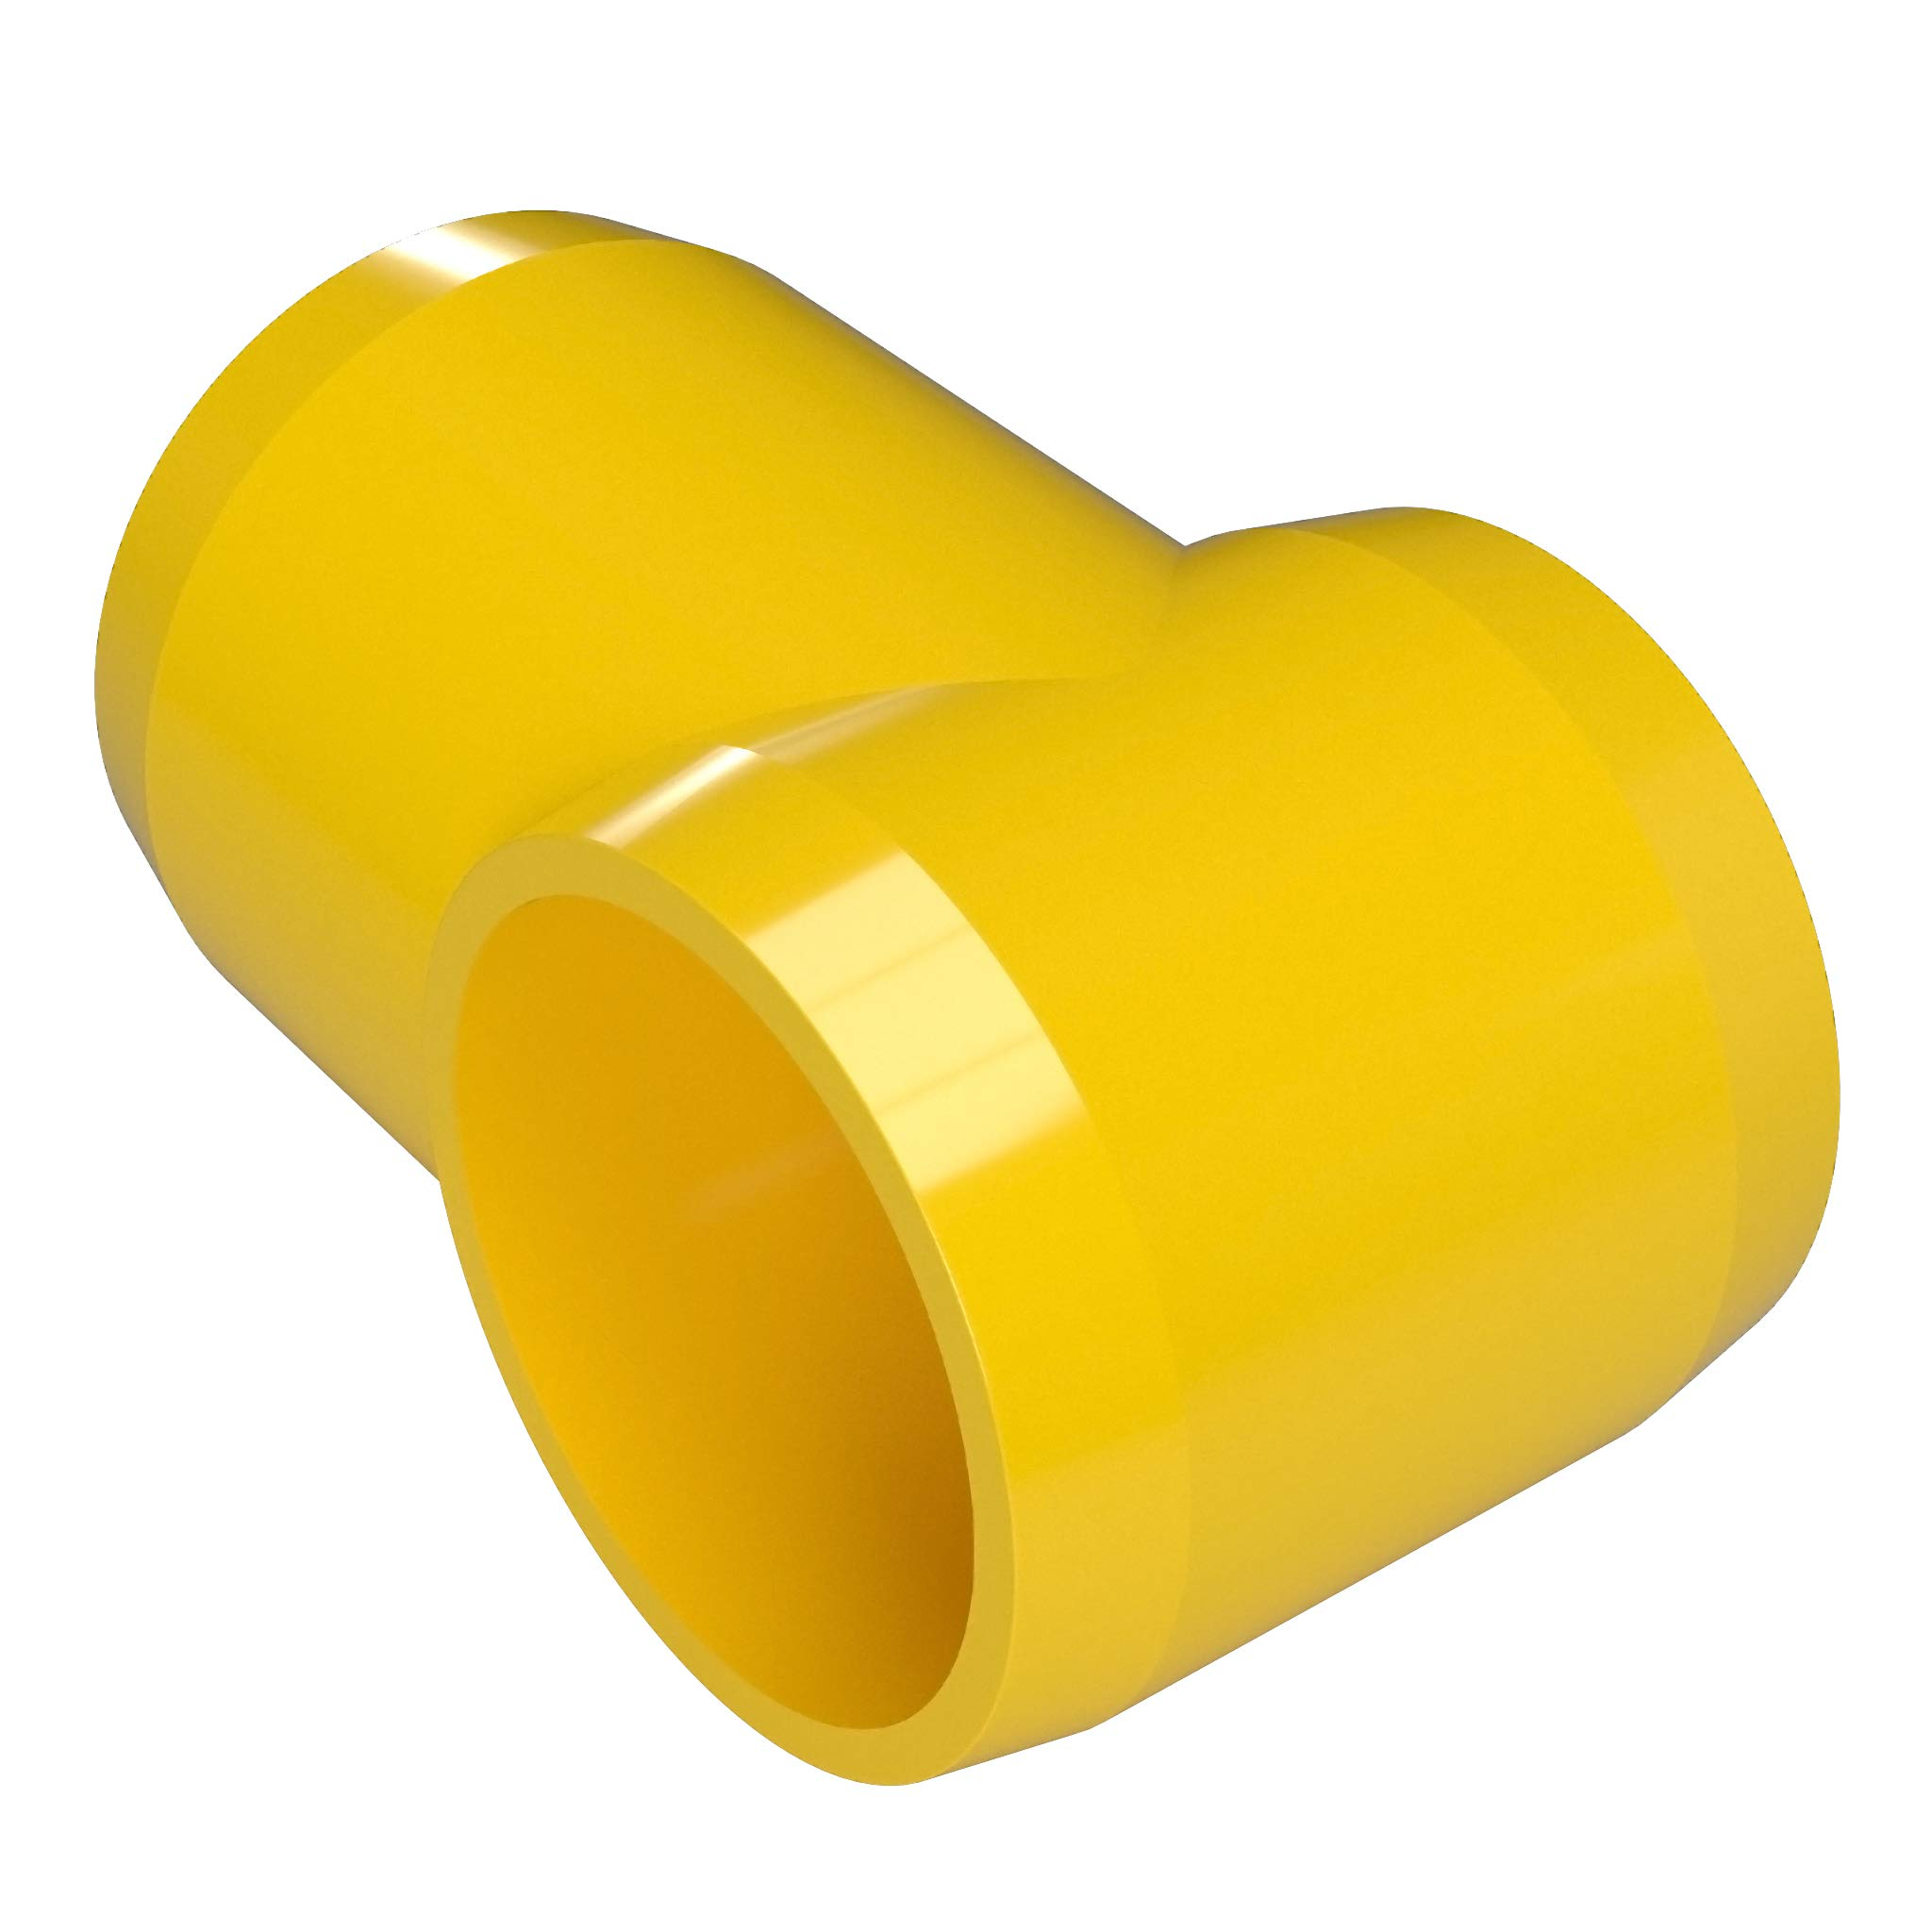 FORMUFIT F114STE-YE-4 Slip Tee PVC Fitting, Furniture Grade, 1-1/4'' Size, Yellow (Pack of 4)